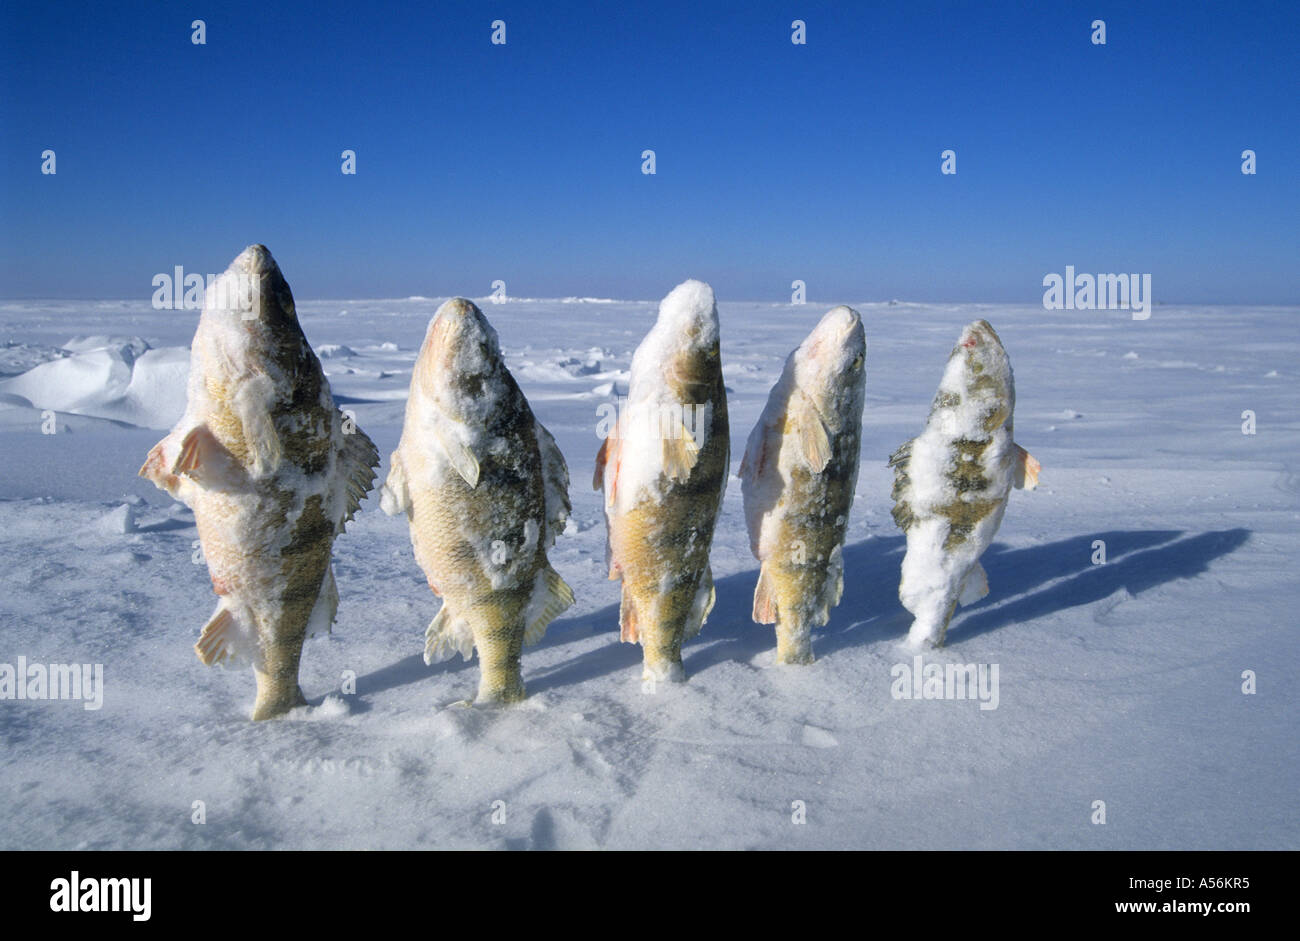 Frozen fish in the snow mille lacs lake minnesota usa for Best frozen fish to buy at grocery store